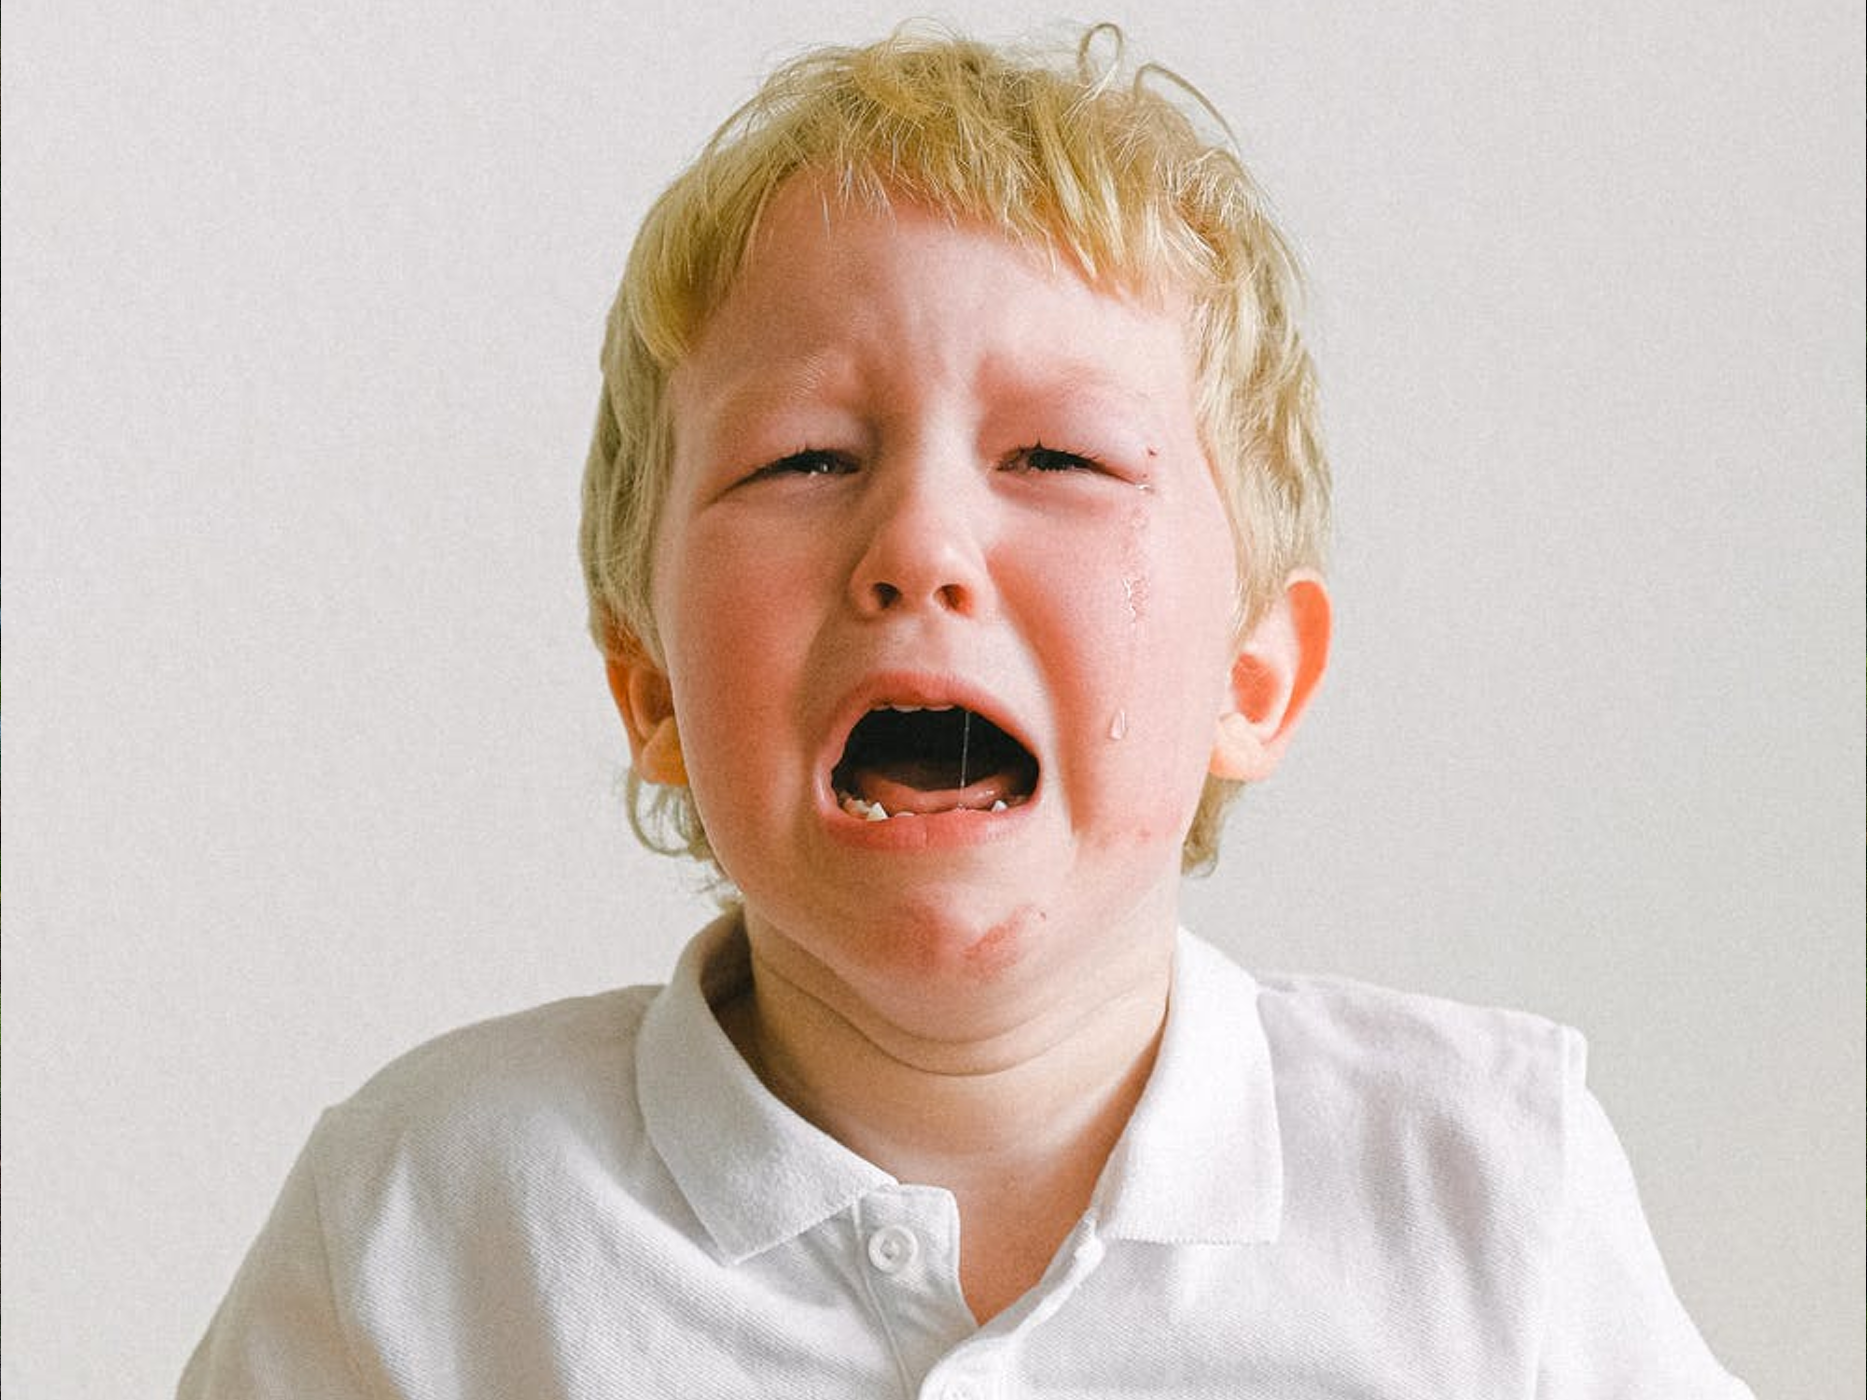 The Montessori Approach To Dealing With Tantrums | The Montessori Room